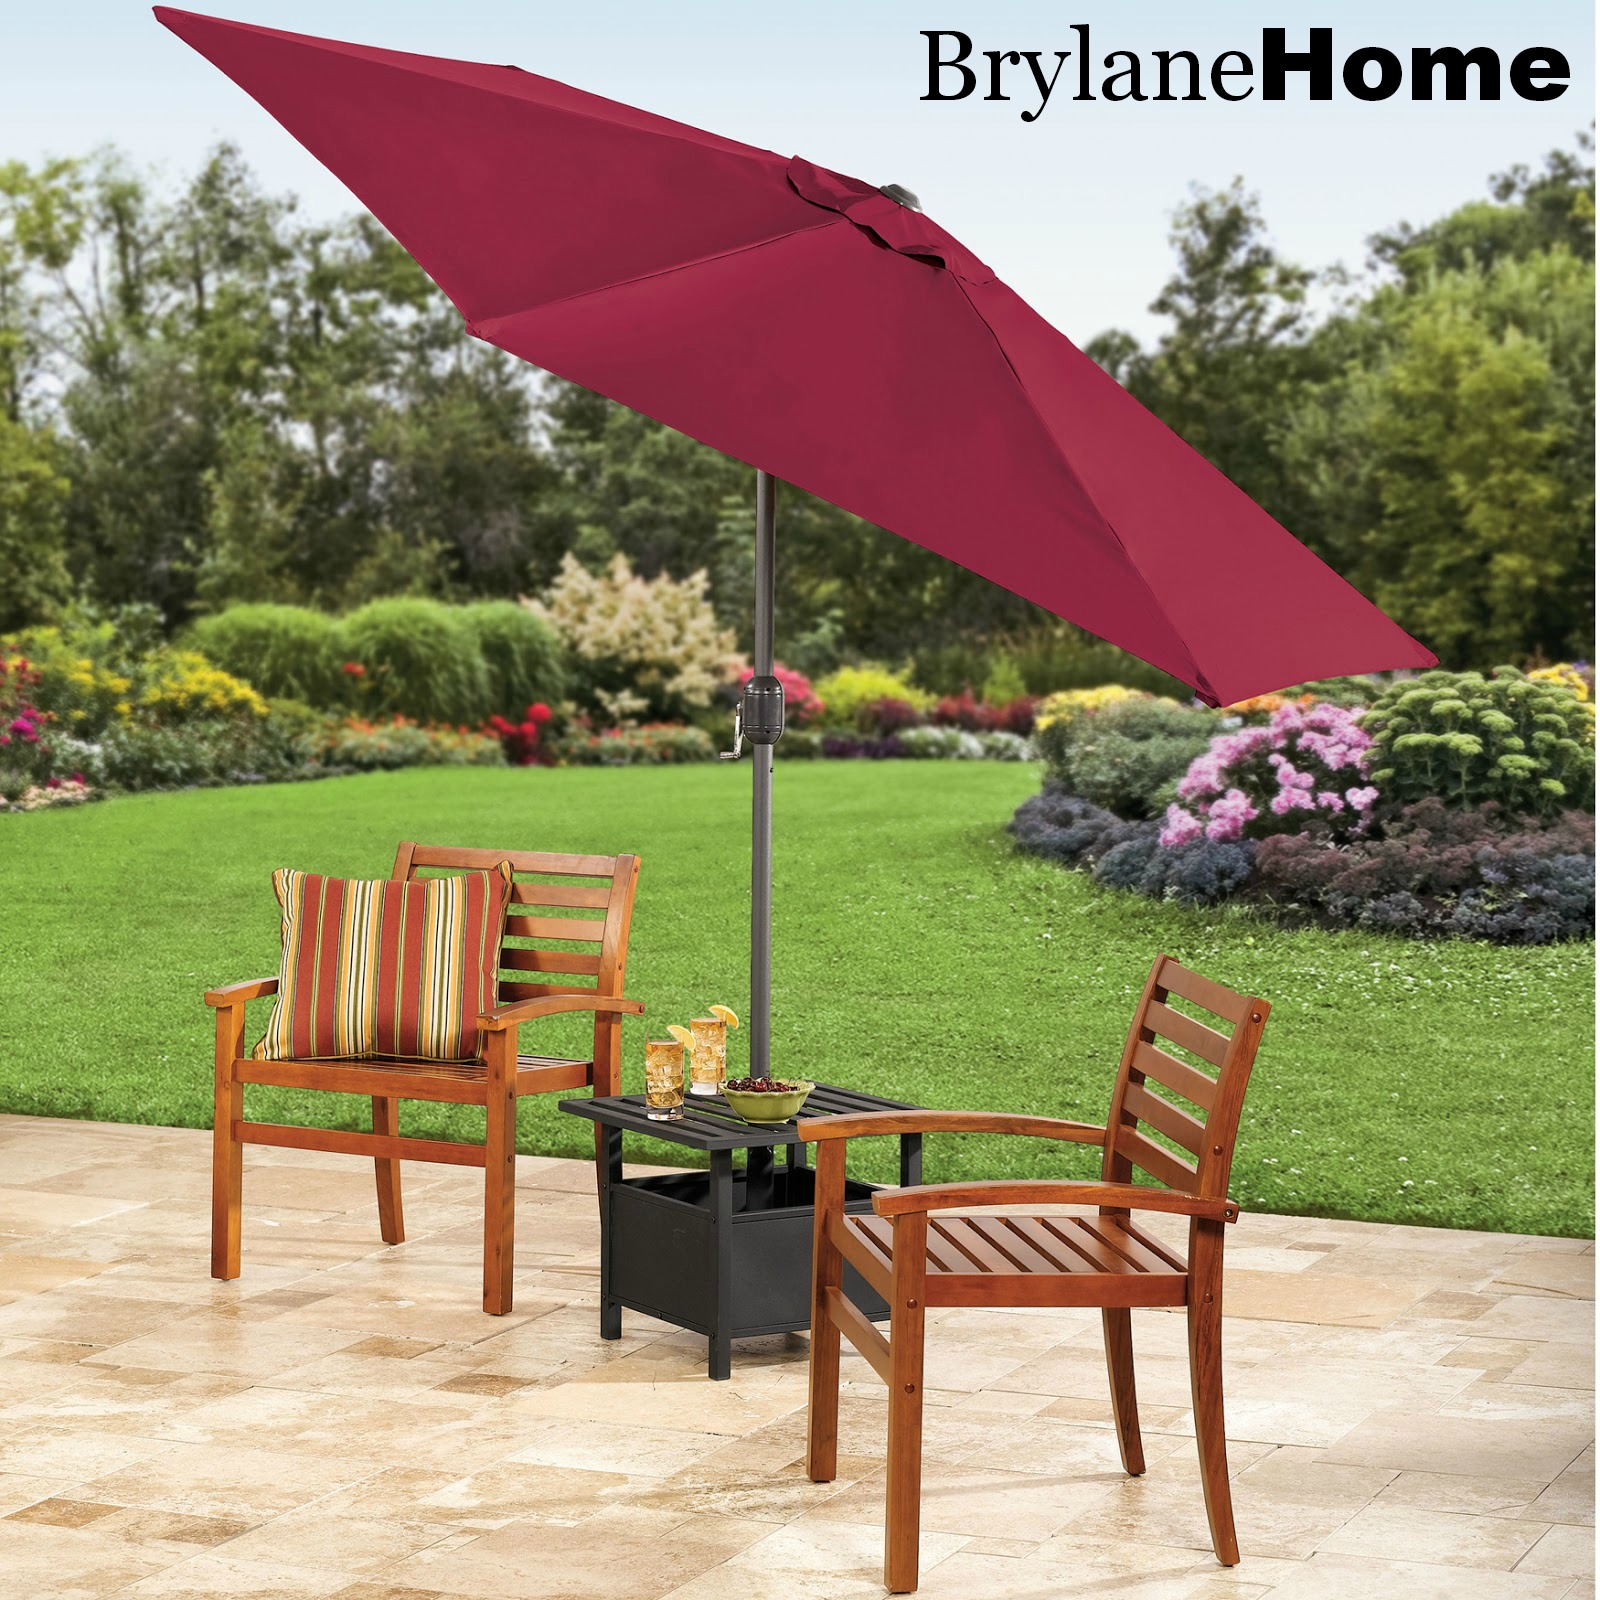 patios sunshade umbrella patio large offset umbrellas big tilt base with wheels covers outdoor side table storage furniture for small spaces nautical tures folding nic bunnings